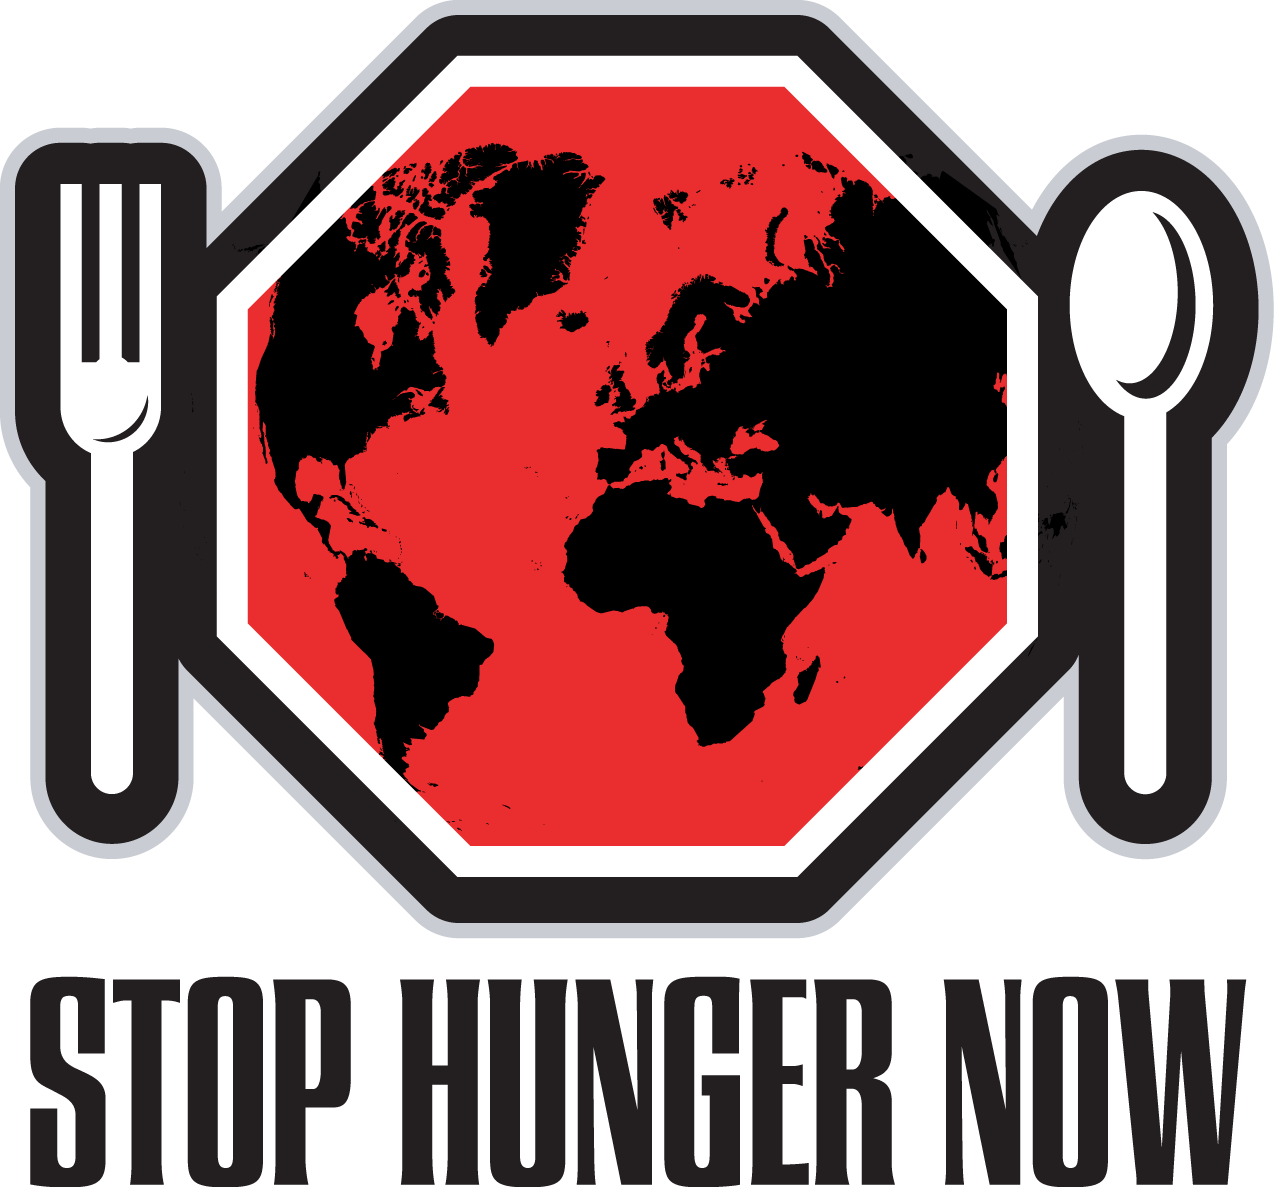 Hungry clipart hungry family. Stop hunger now january